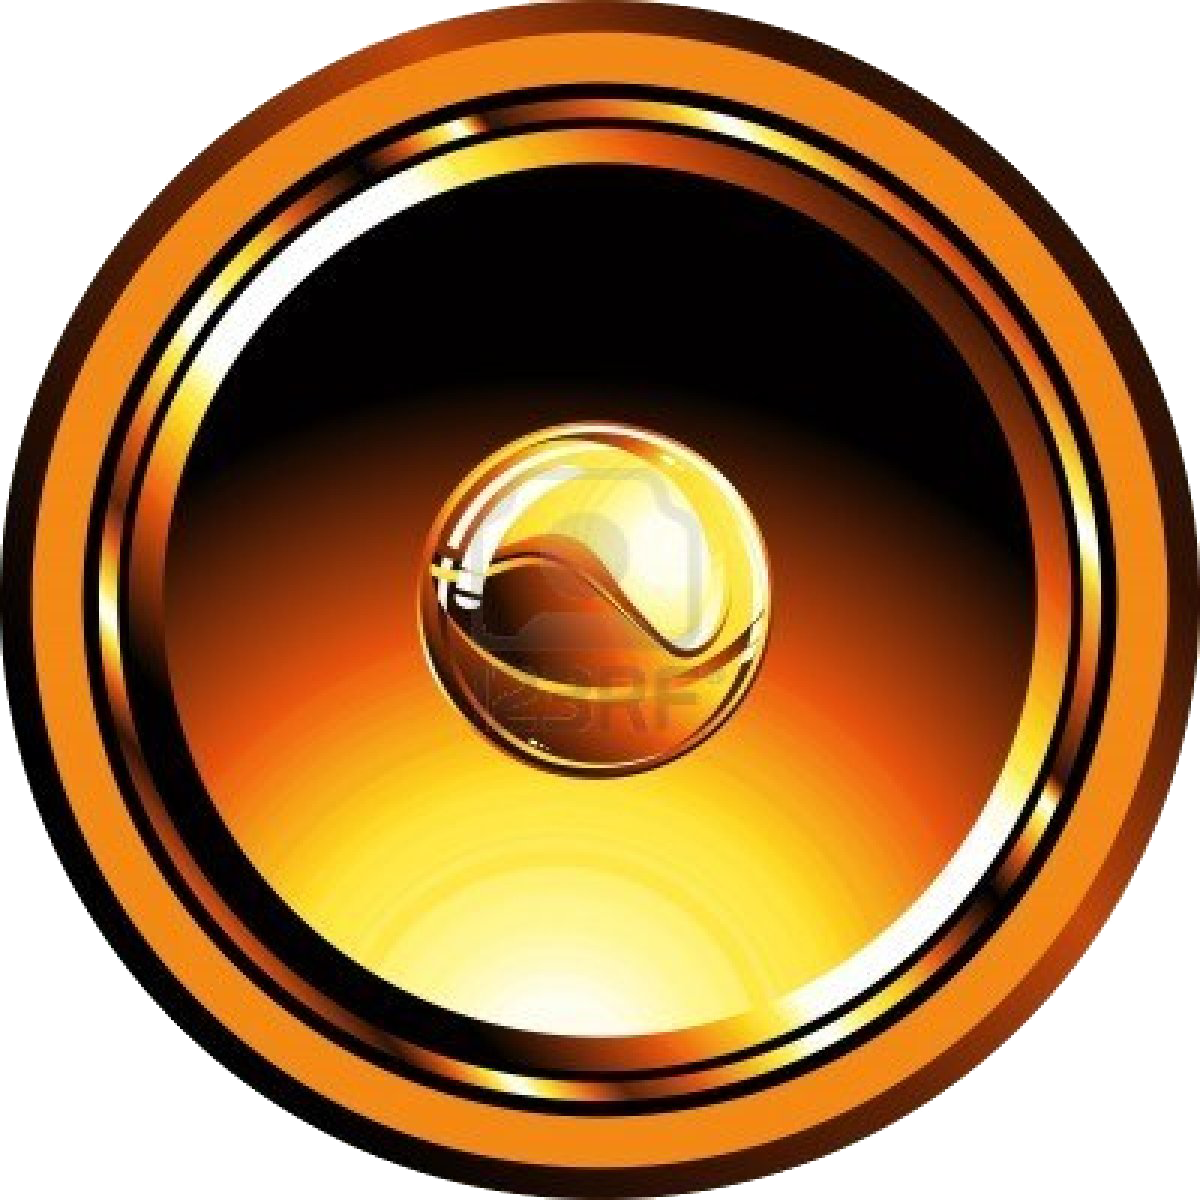 Gold speakers png. Loudspeaker royalty free stock